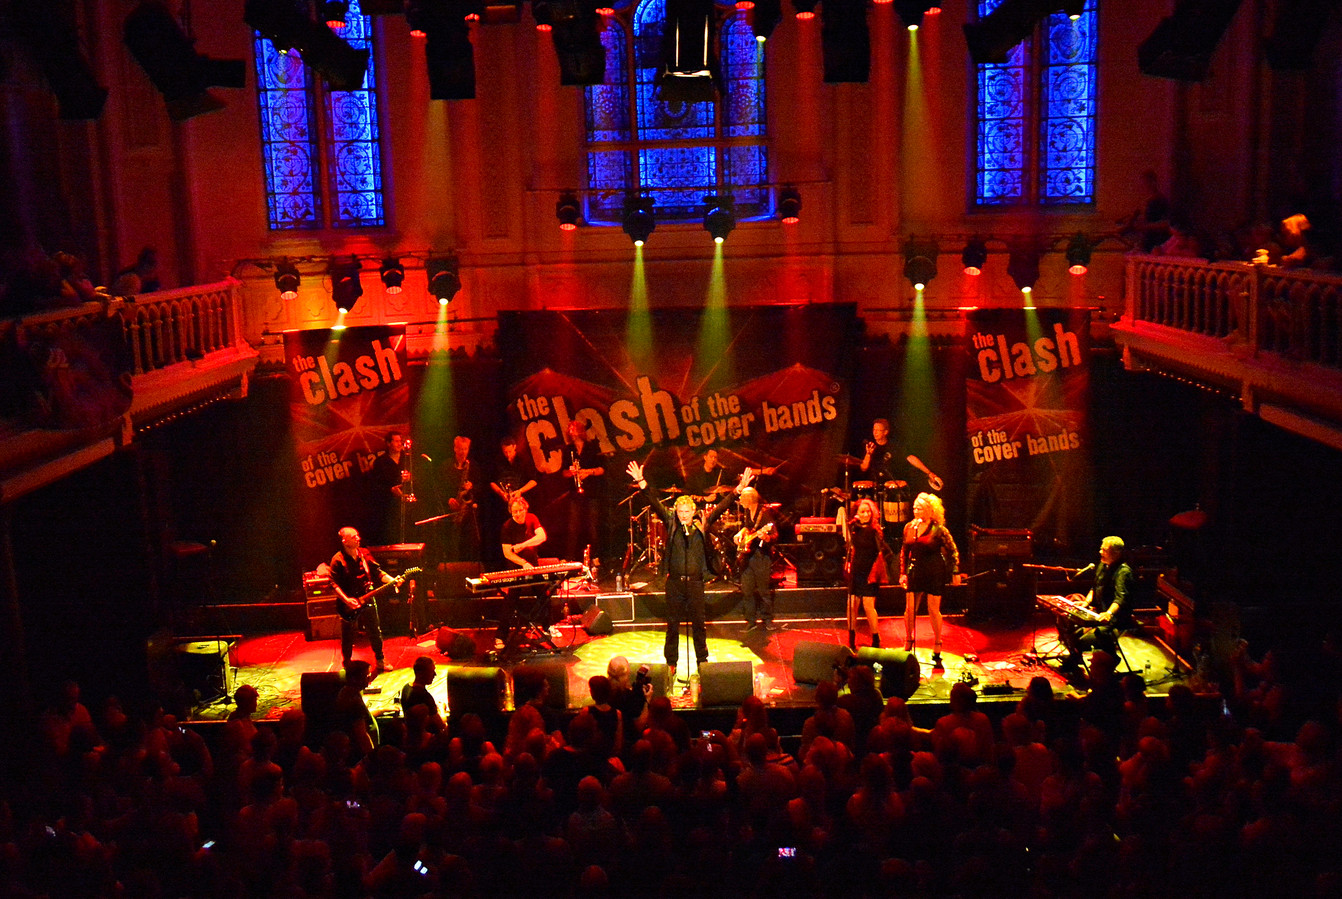 Joe Cover Band in Paradiso tijdens finale Clash of the Coverbands